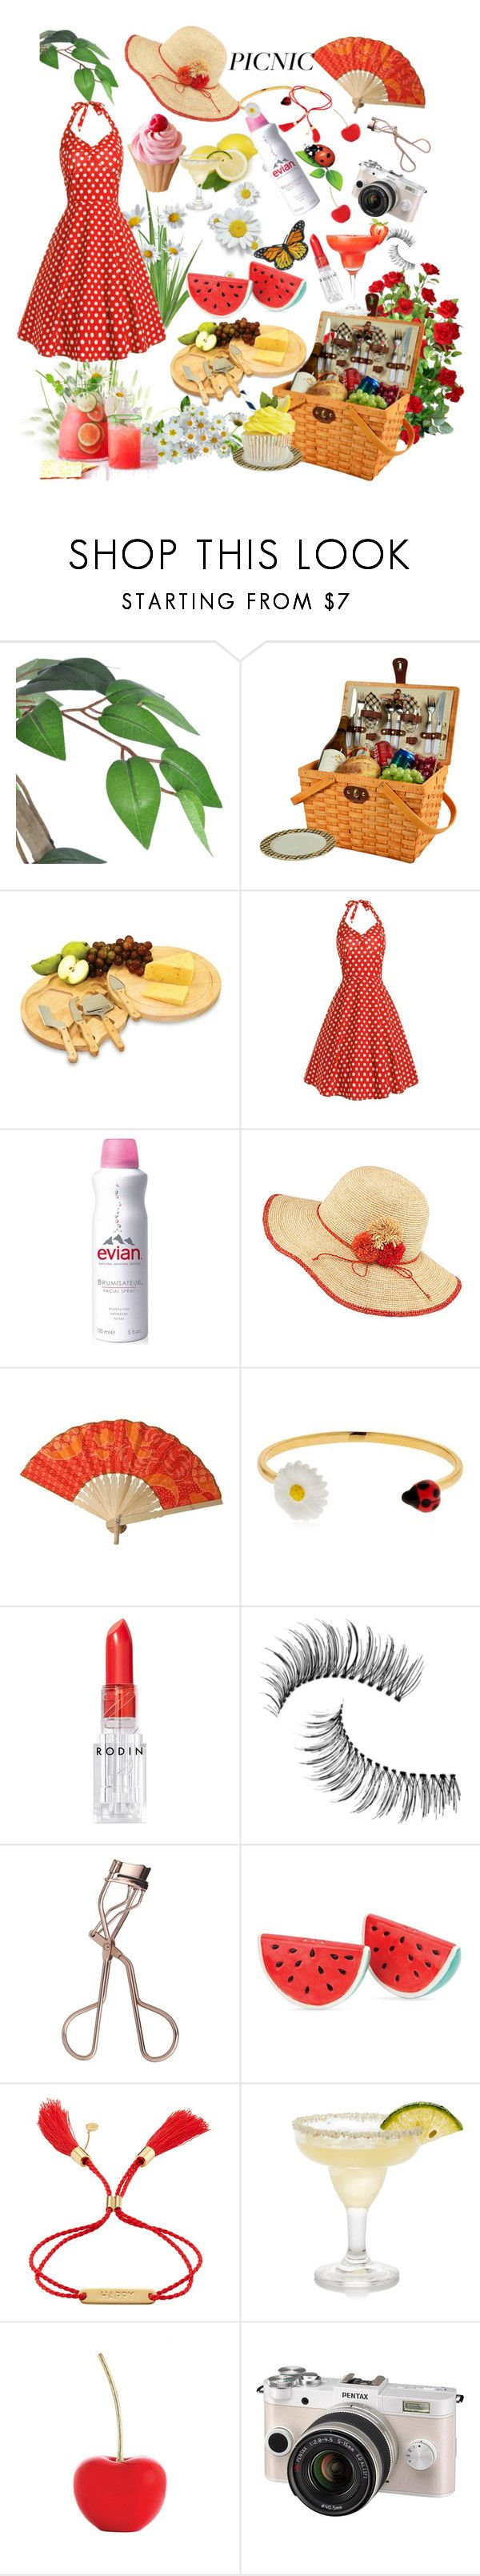 """""""Romamtic Picnic ♡"""" by jannatqtr ❤ liked on Polyvore featuring Picnic at Ascot, Picnic Time, Evian, Frontgate, Nach, Rodin, Trish McEvoy, Sunnylife, Chloé and Pentax"""